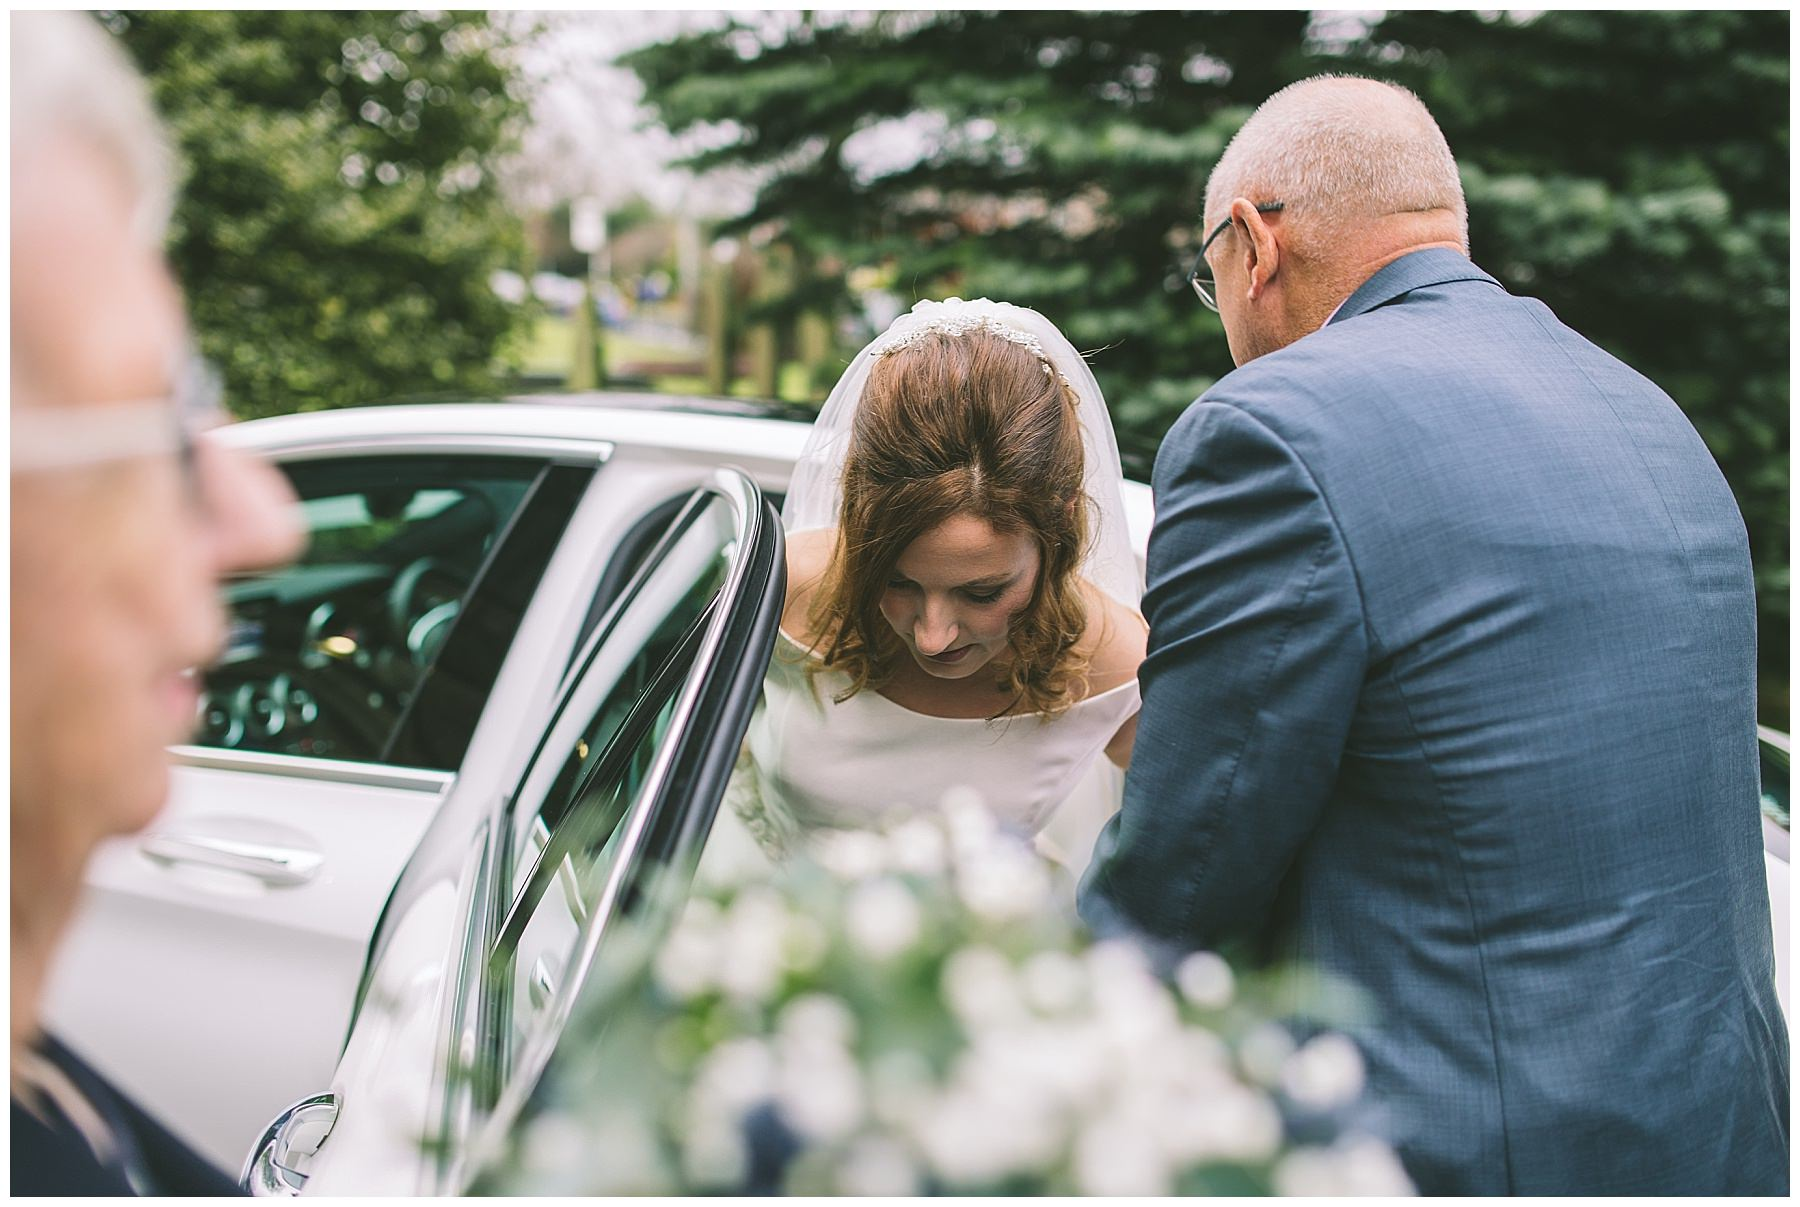 Brides dad helps her out of car as she arrives at church